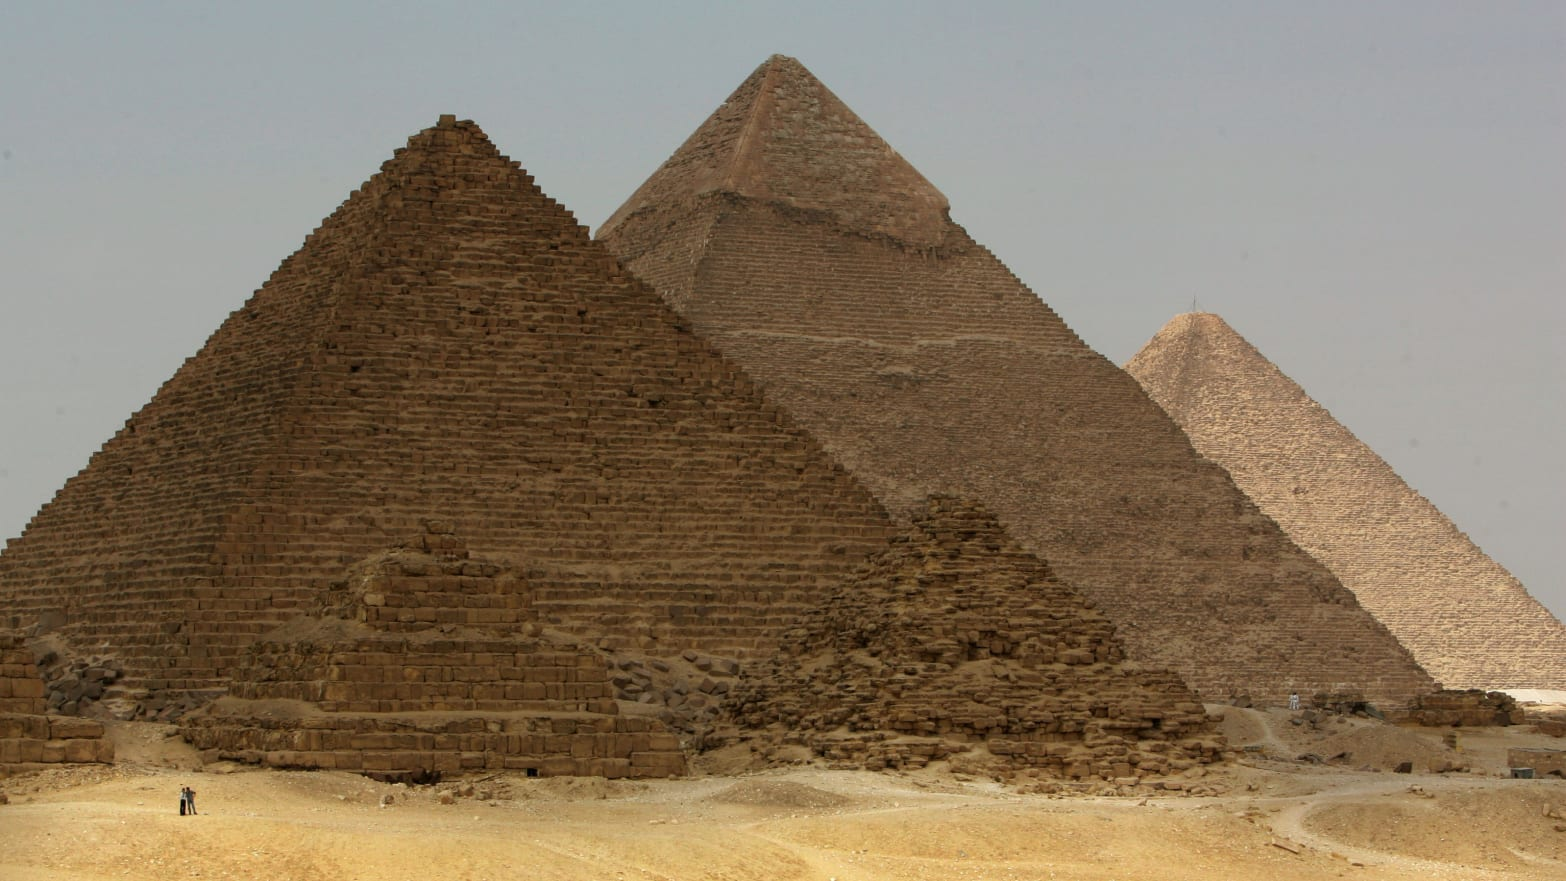 Bus Explosion Targets Foreign Tourists Near Giza, Egypt Pyramids